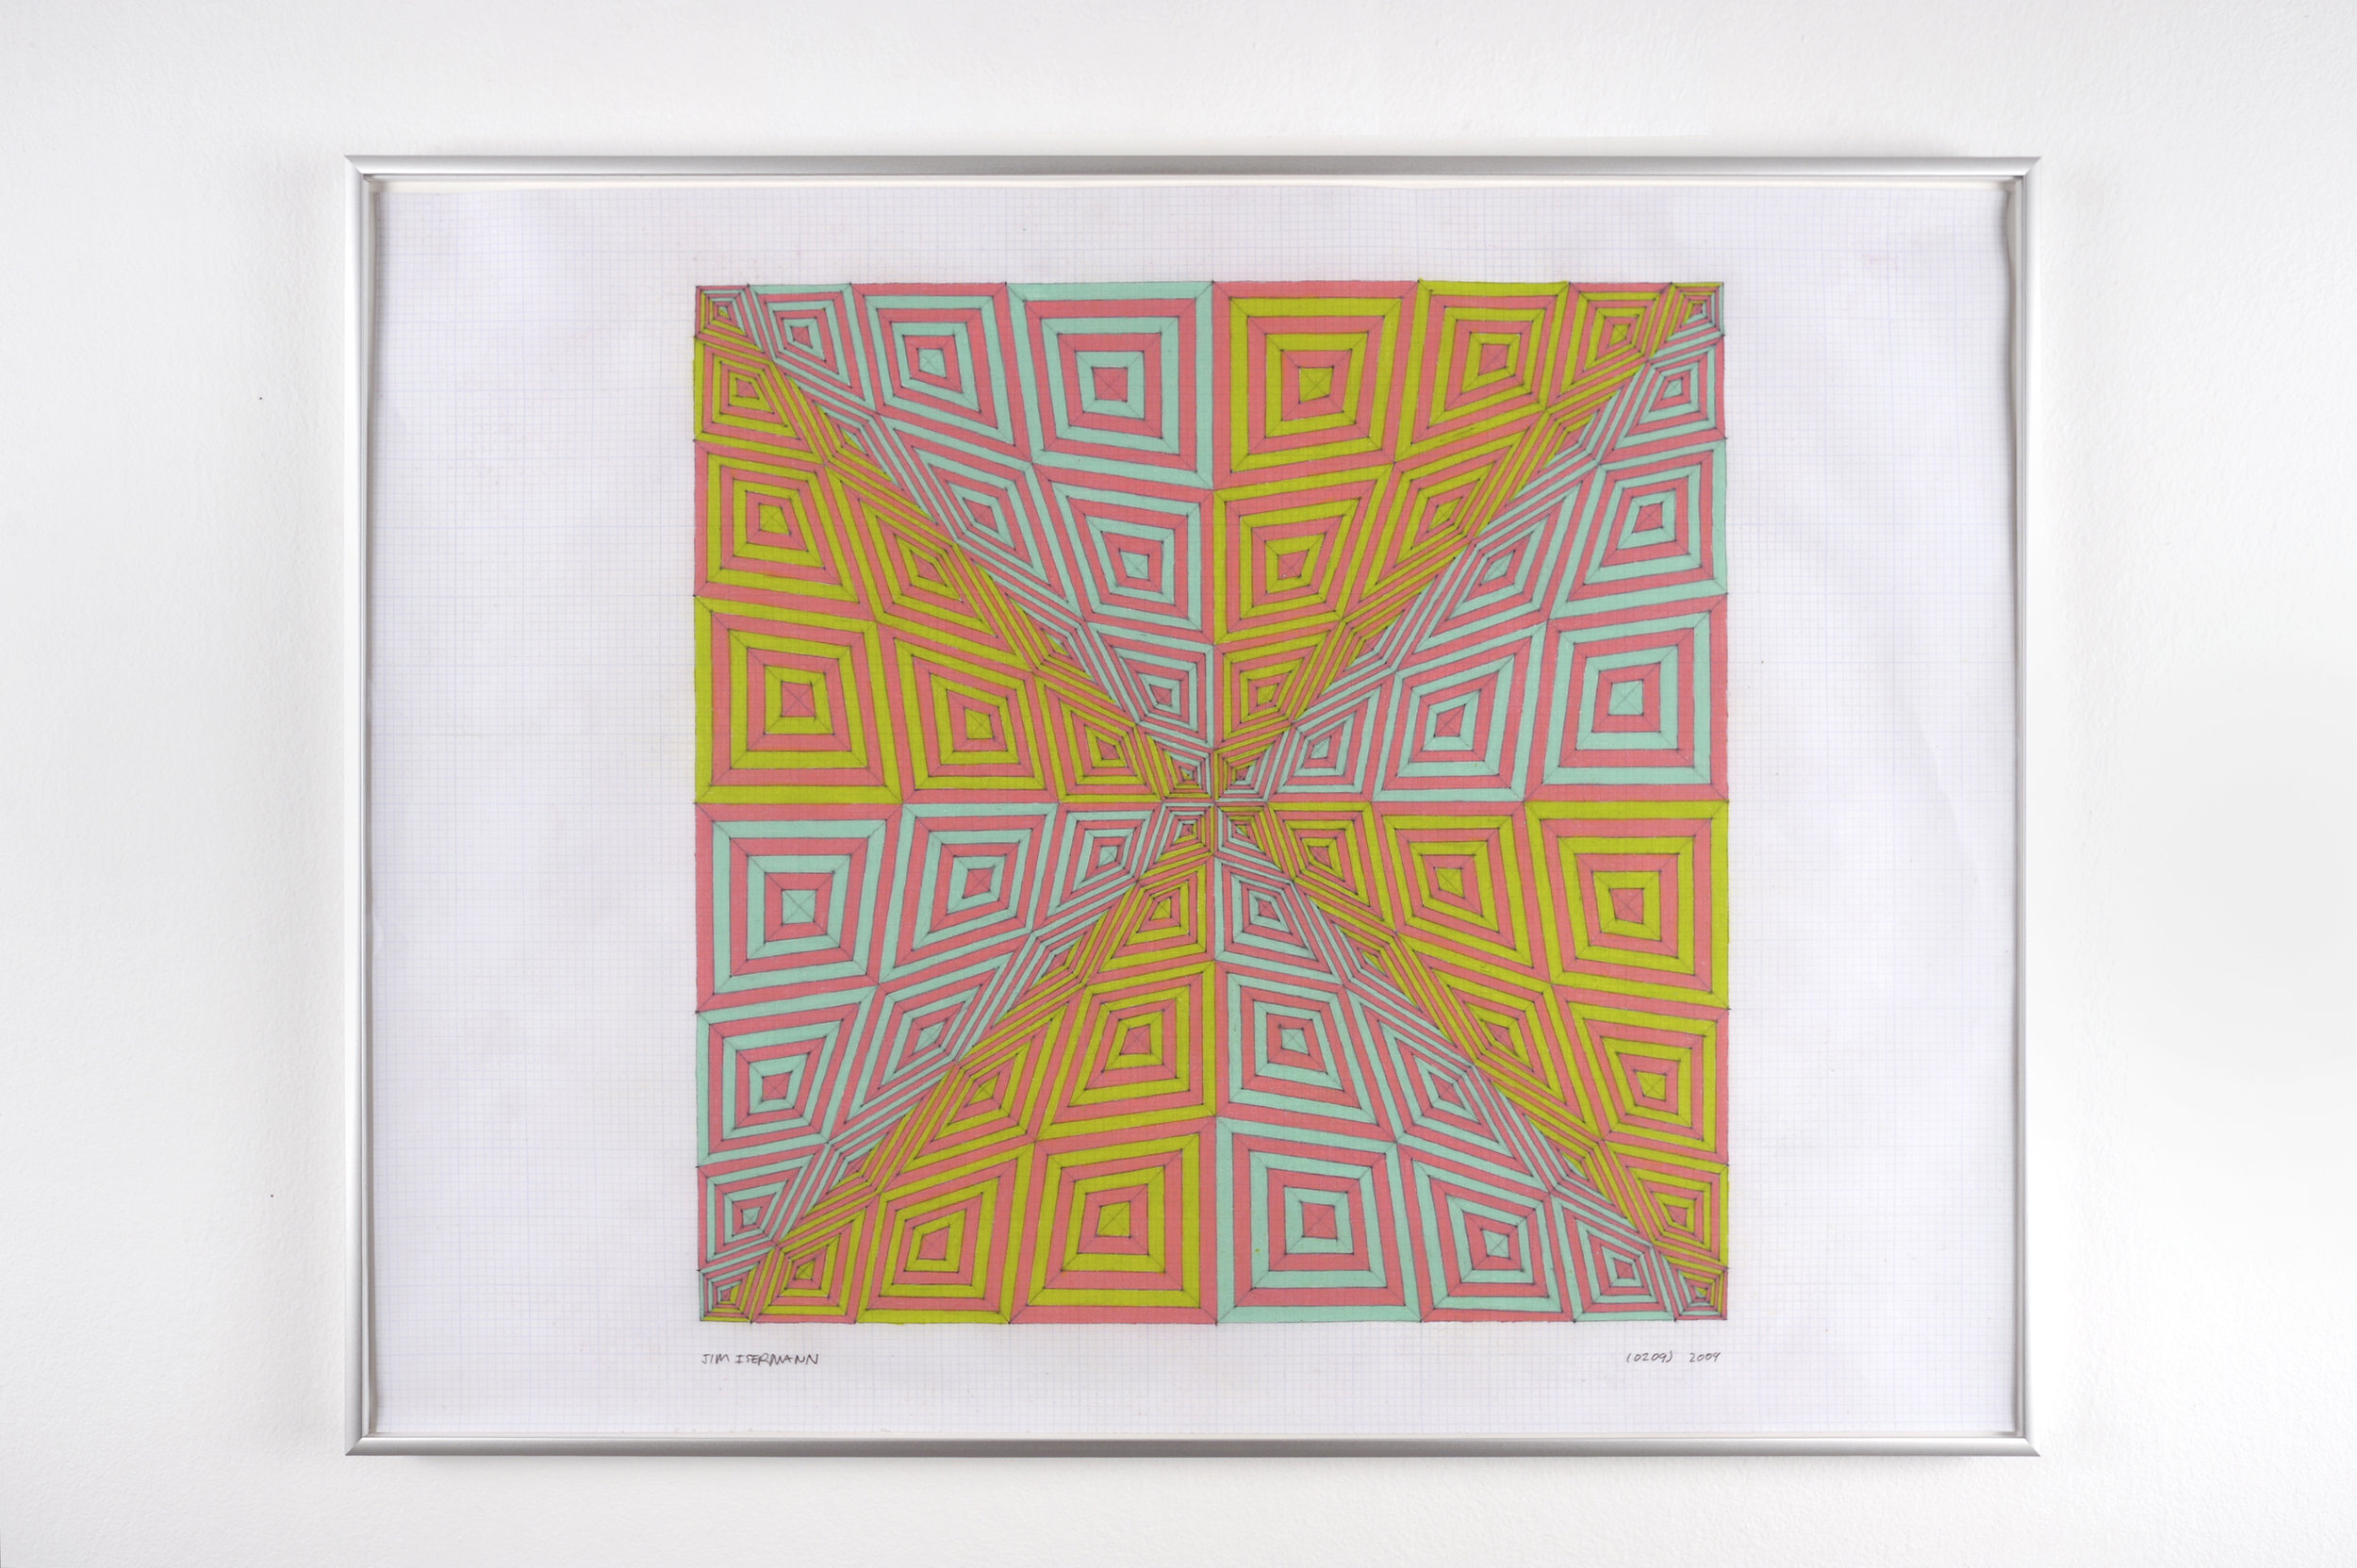 Untitled (0209), 2009 colored pencil on grid paper 47,5 x 62,7 cm - 18 3/4 x 24 5/8 inches